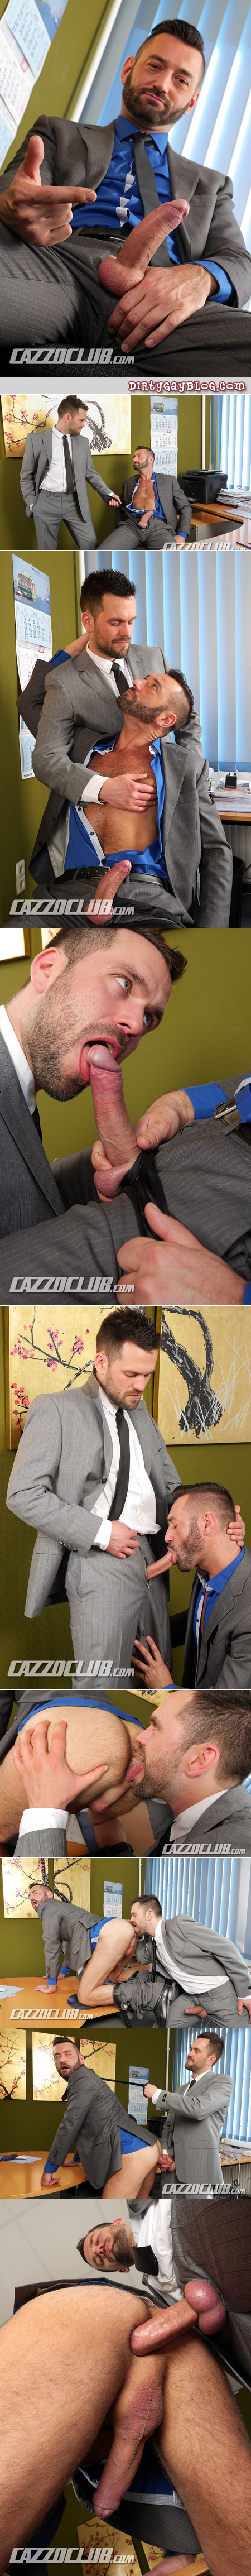 Hairy businessmen in suits fucking at the office.